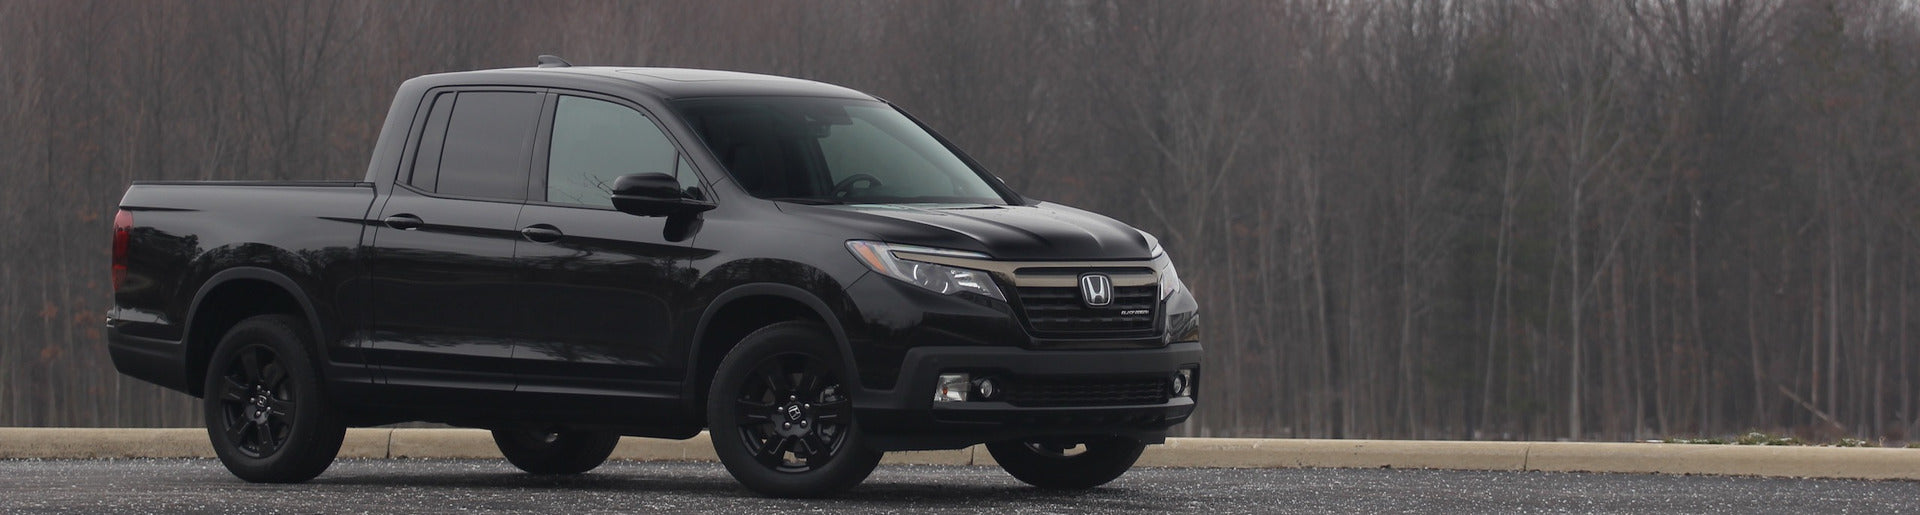 Honda Ridgeline HID headlights with free shipping